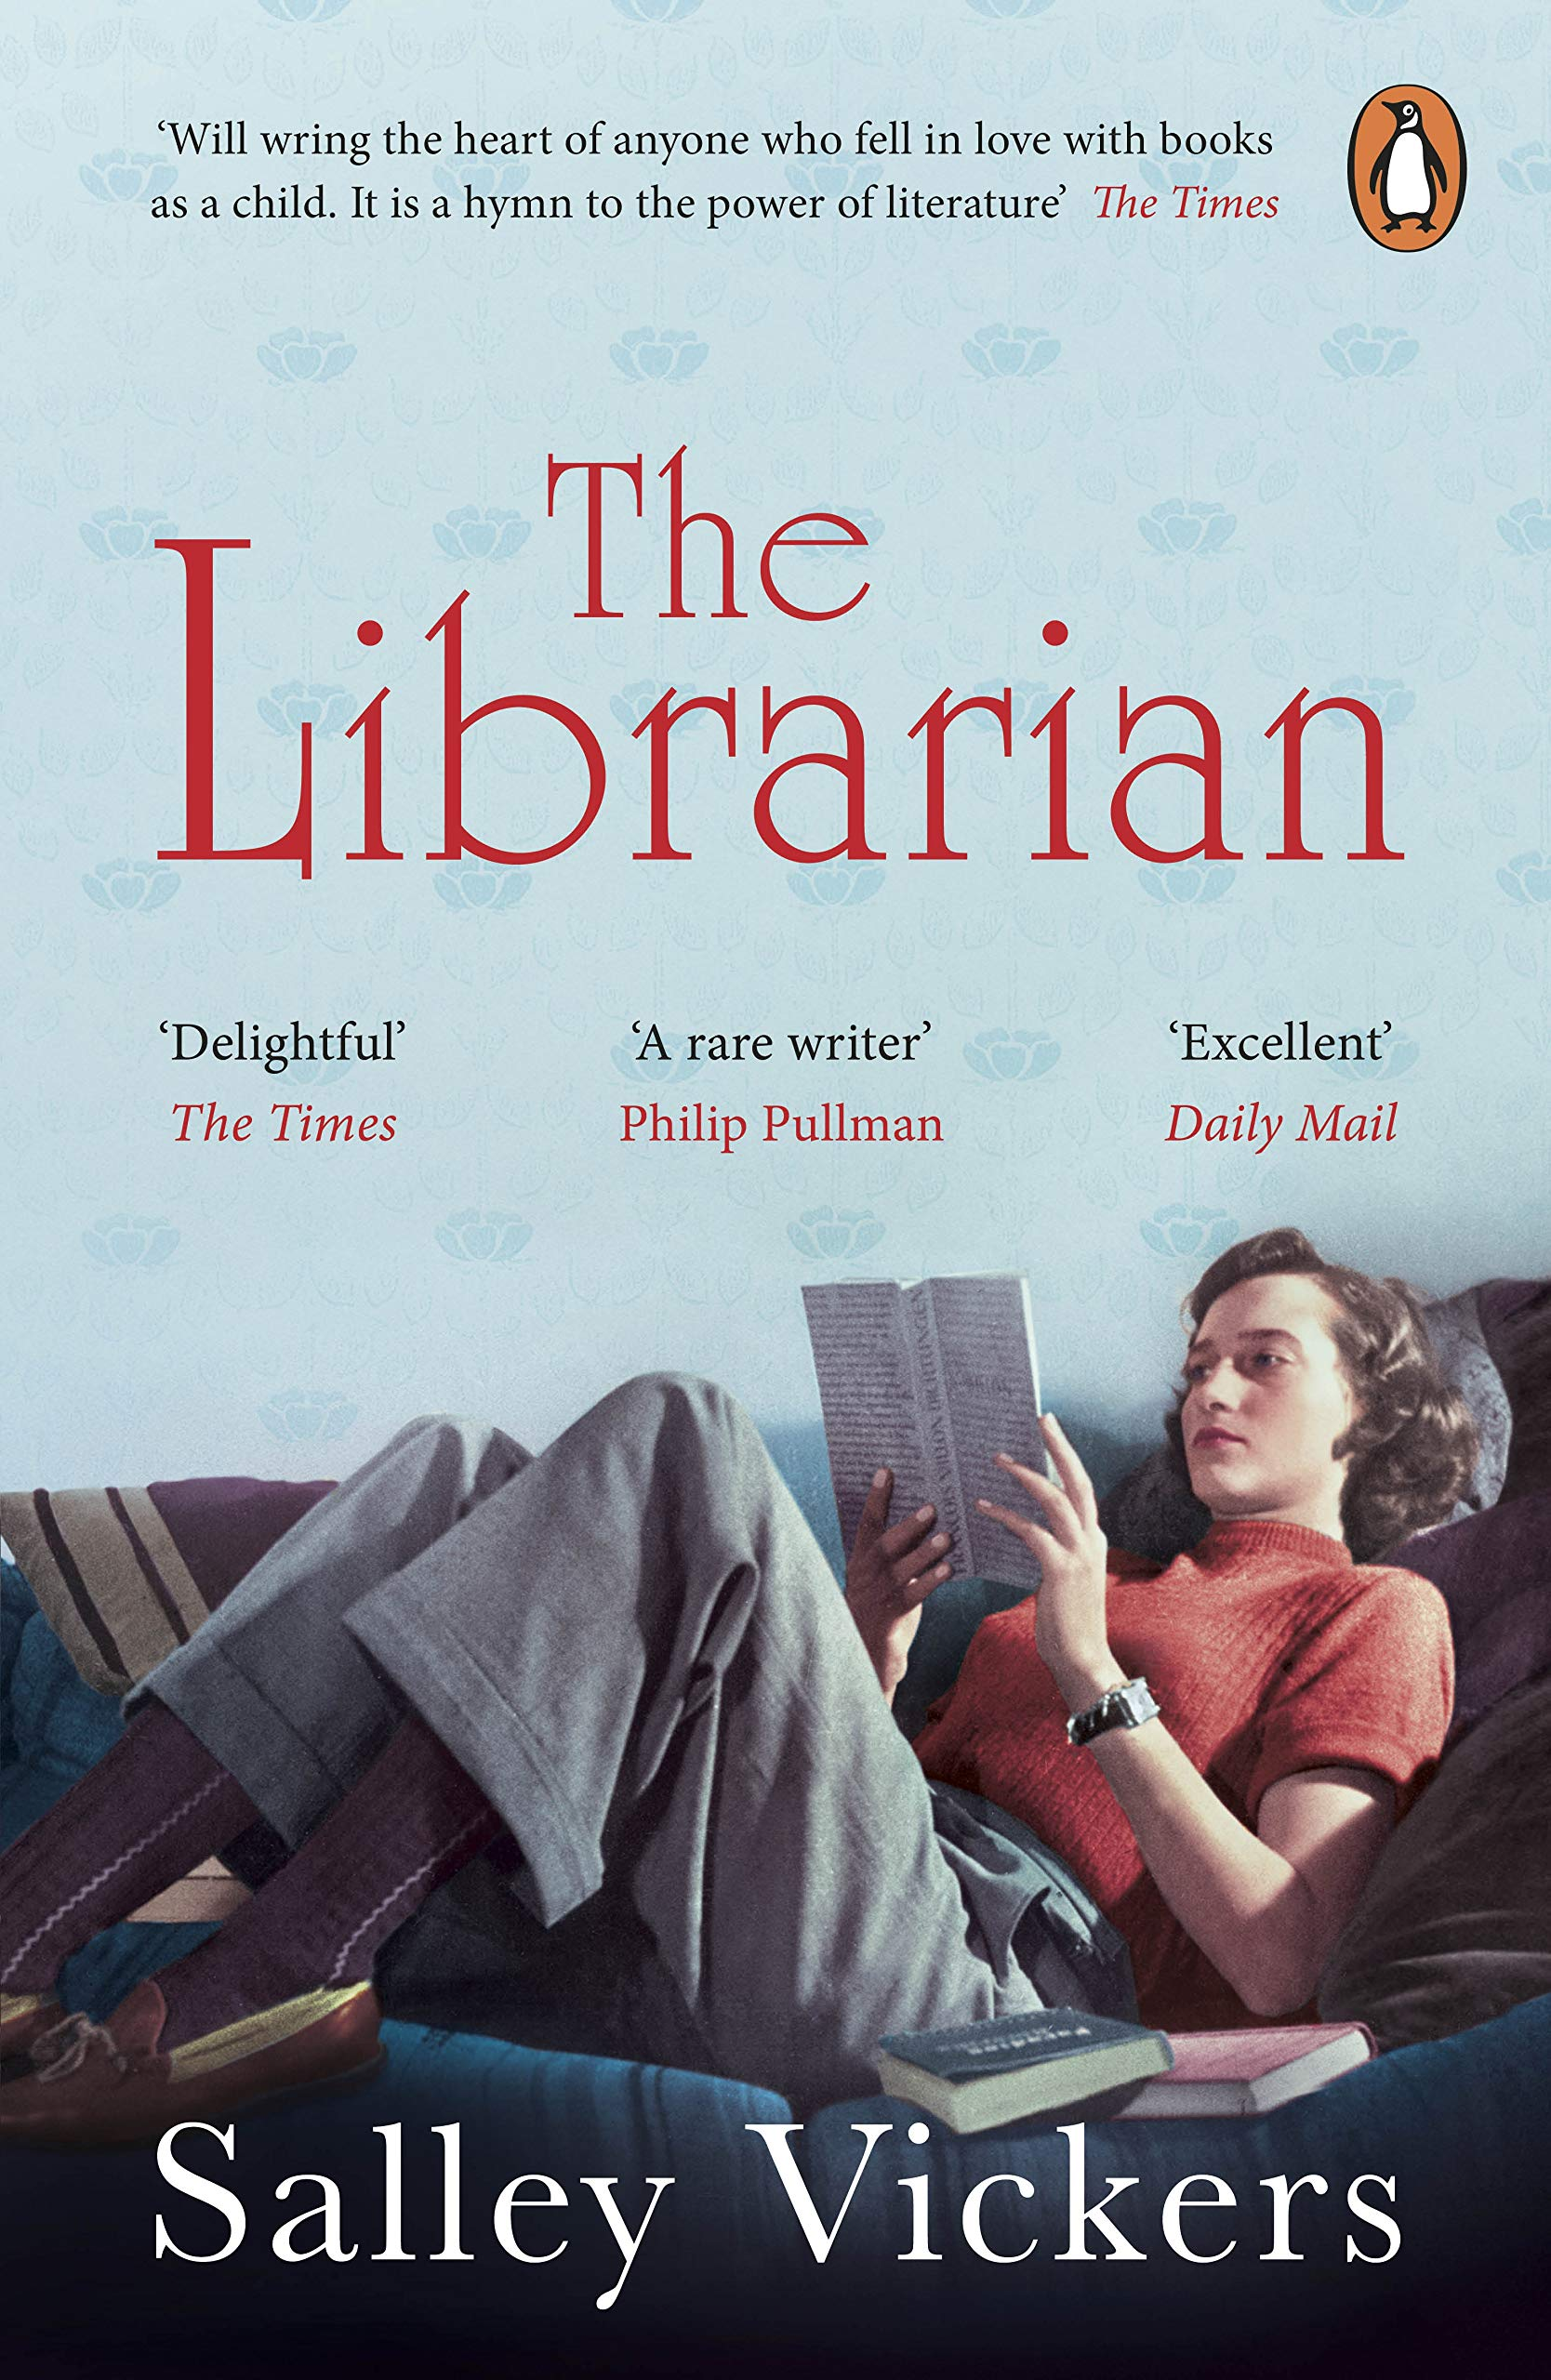 The Librarian - Salley Vickers - Page 2 81LH6jAMTVL